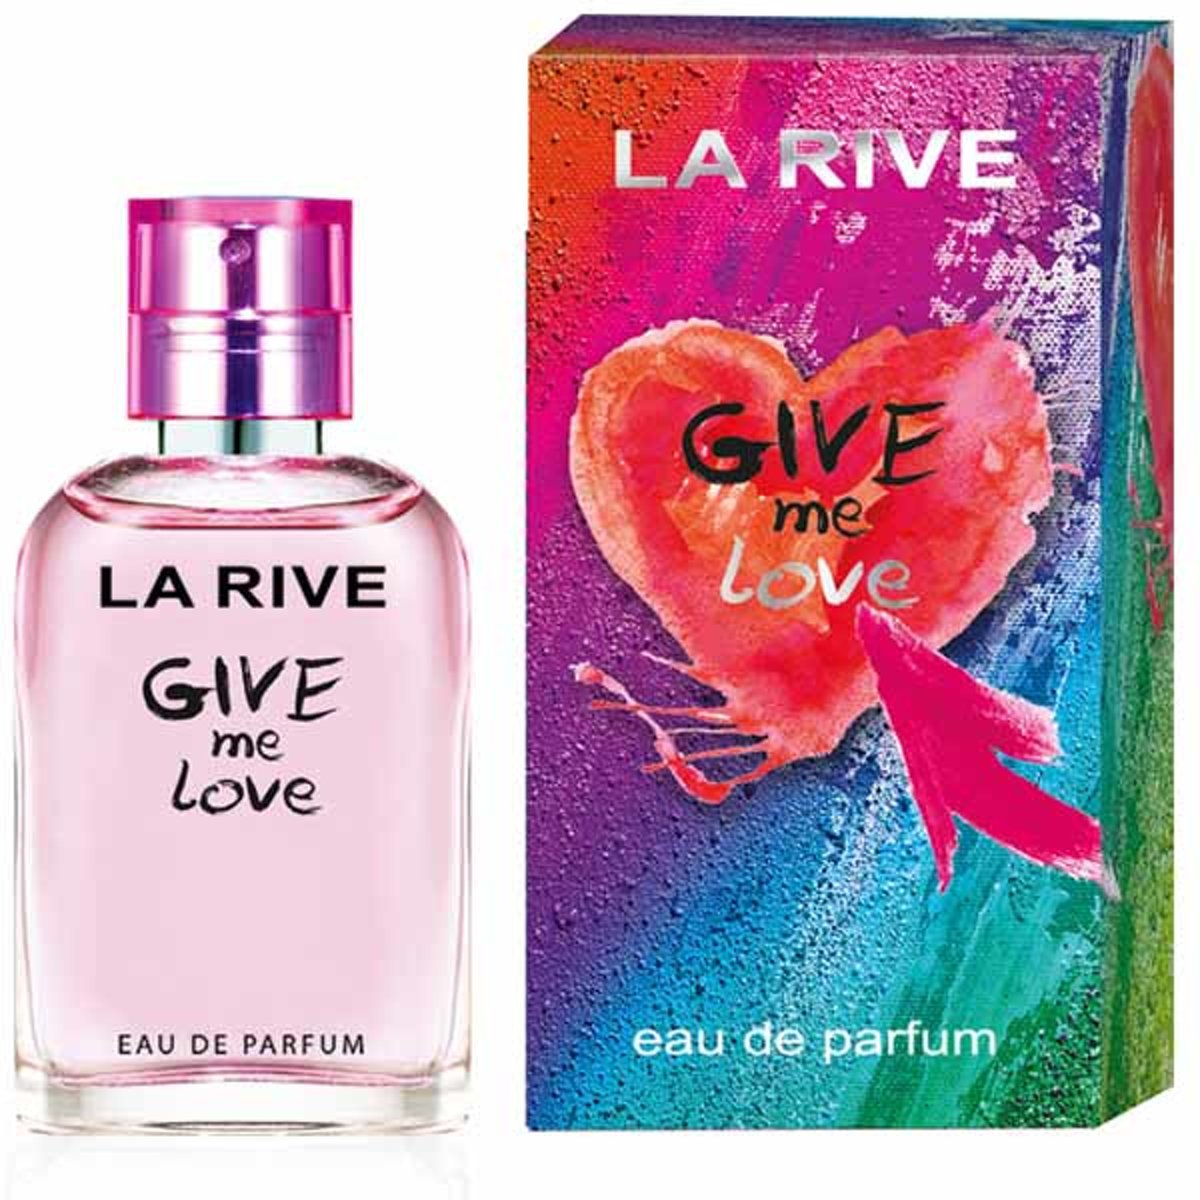 La Rive Give me Love - 30 ml- Eau de Parfum